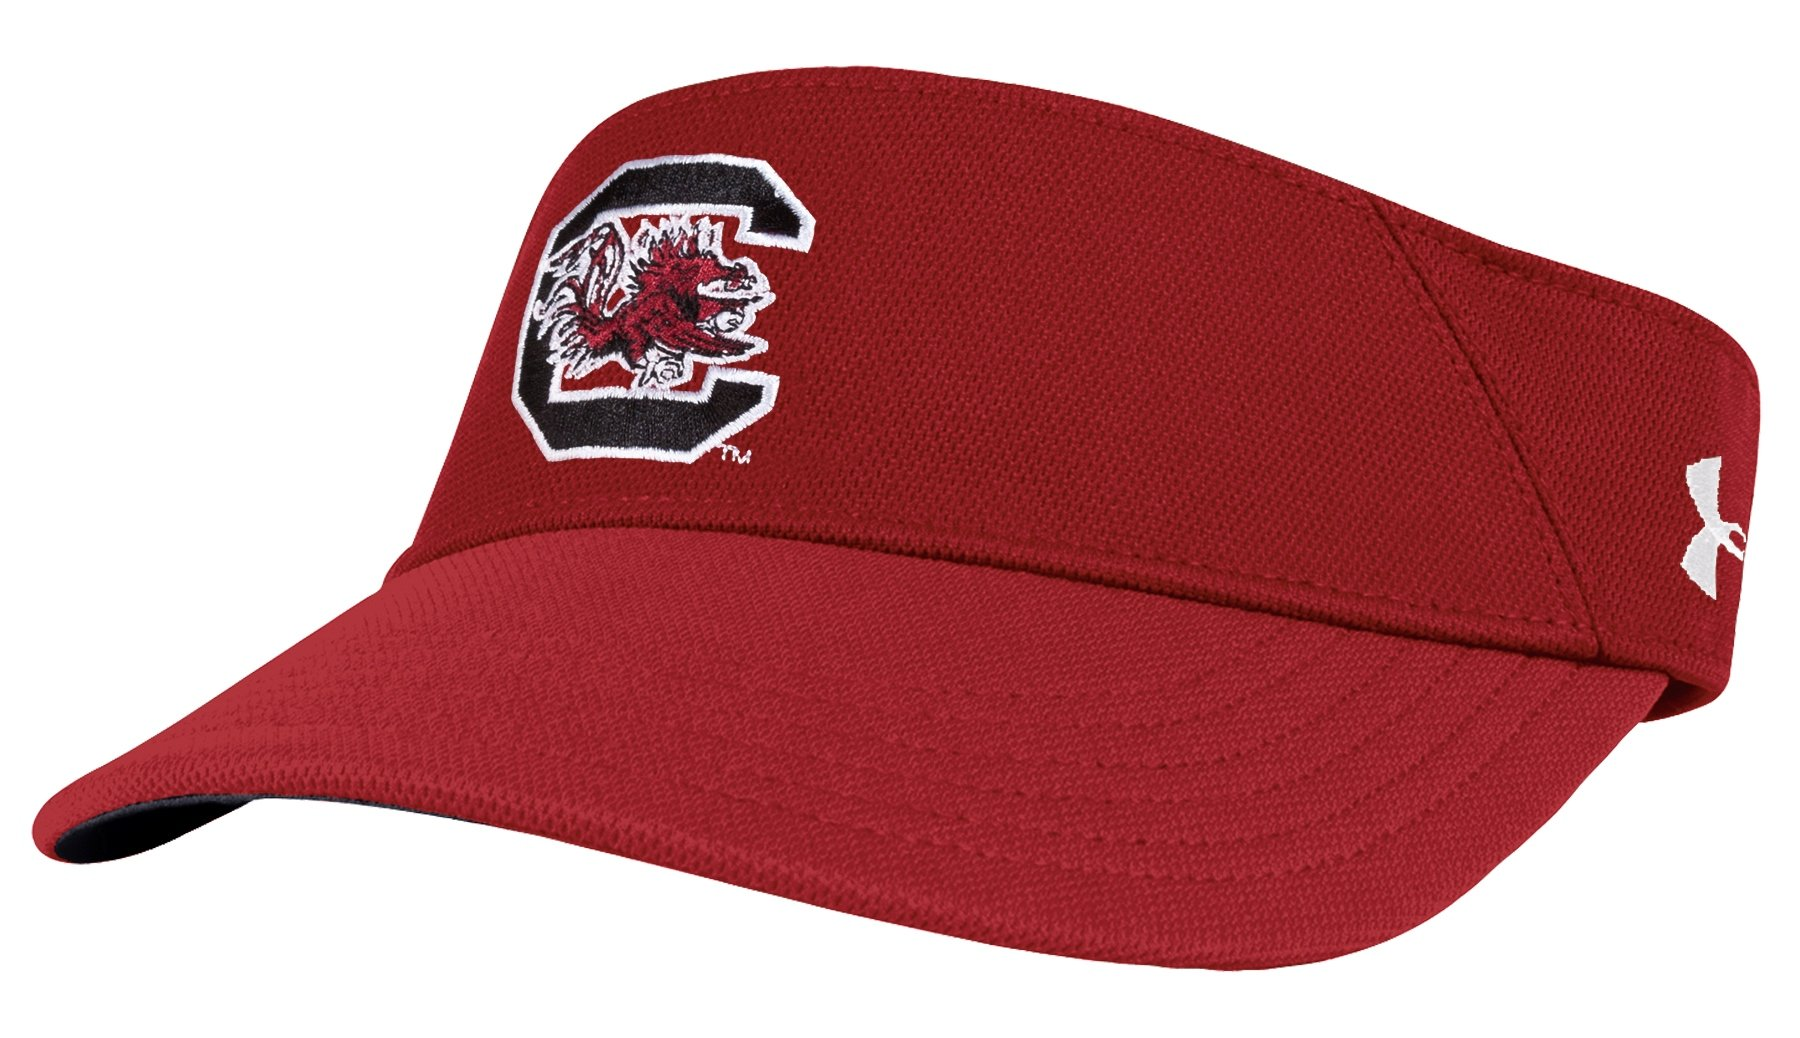 4f449bab Get Quotations · South Carolina Gamecocks Under Armour NCAA Sideline